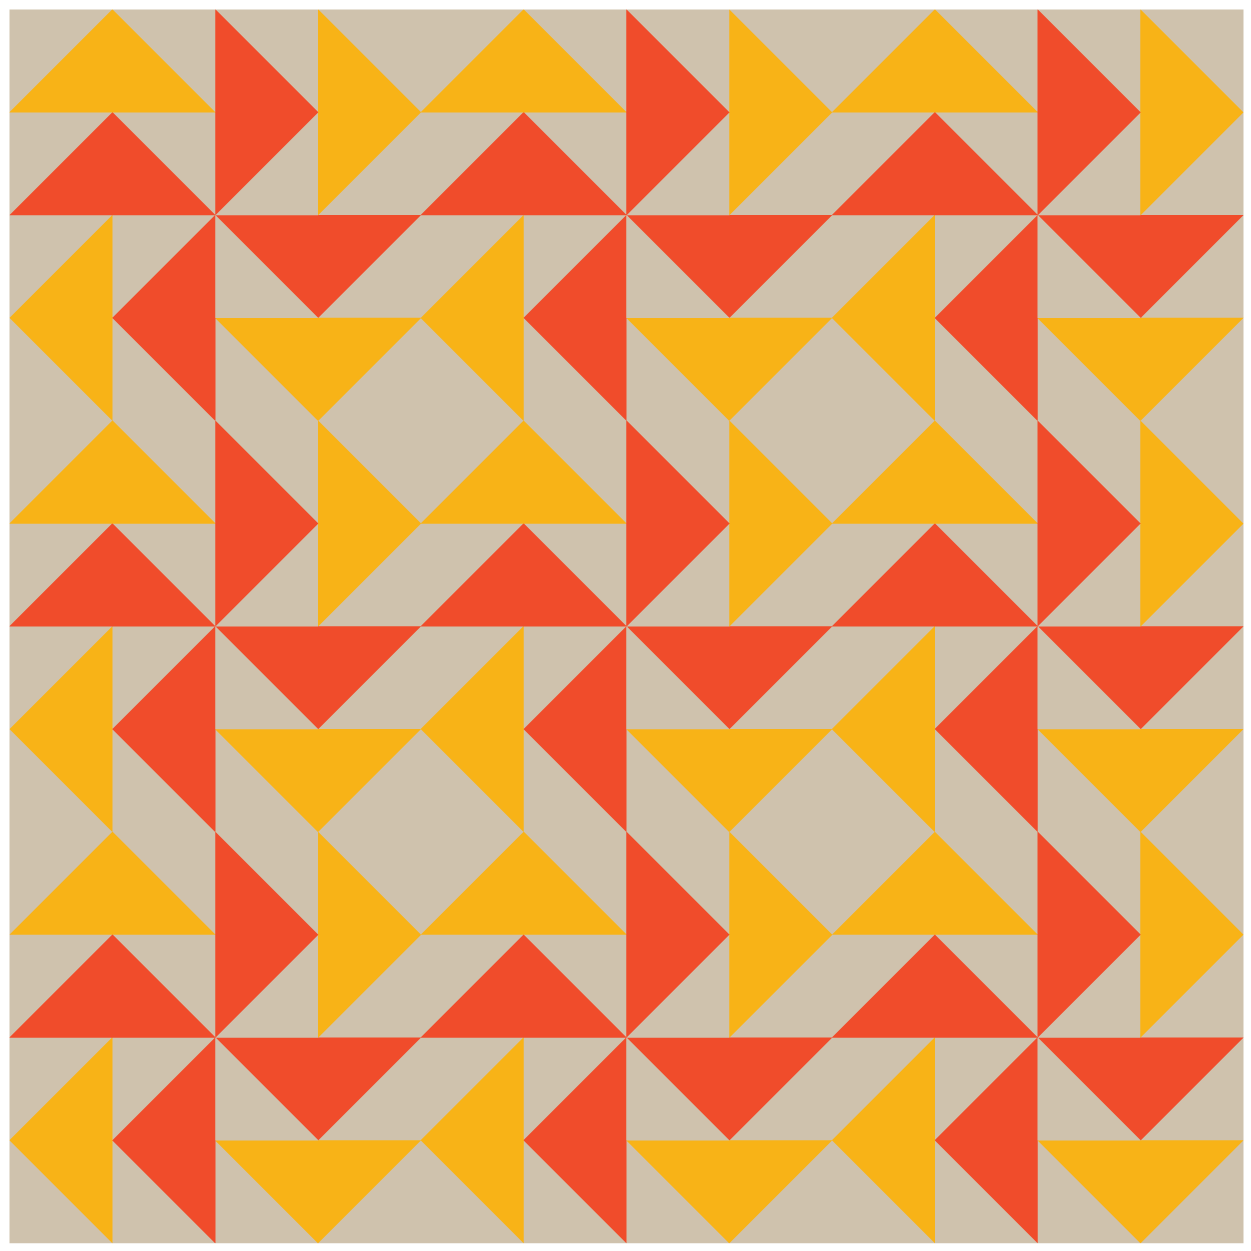 illustration of a group of Dutchman's Puzzle Quilt blocks